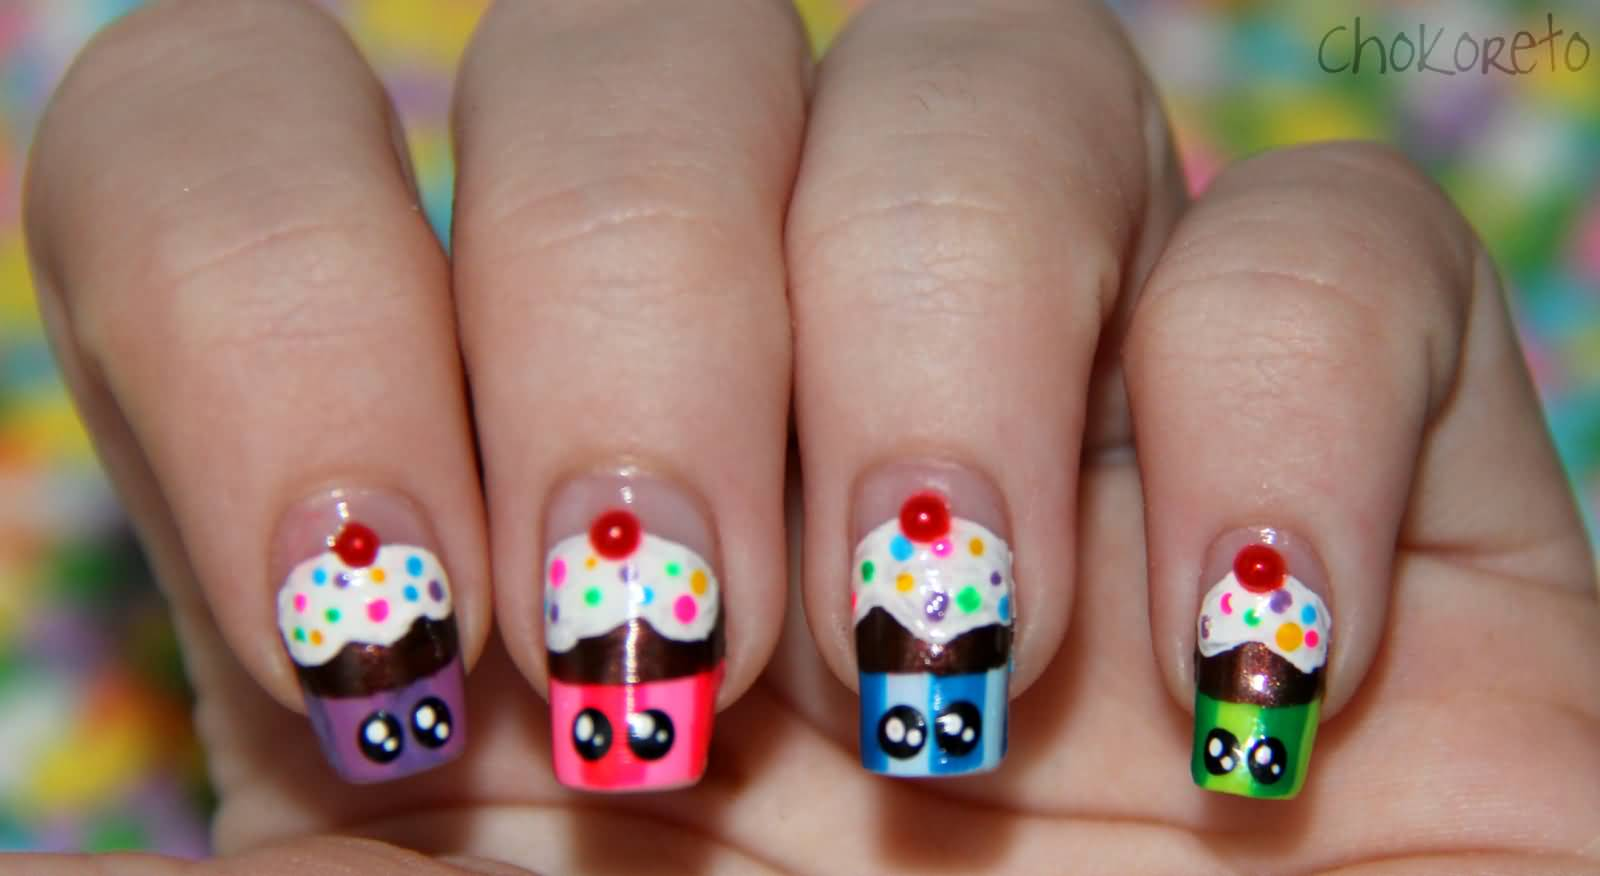 35 cute cupcake nail art design ideas for trendy girls cupcakes with polka dots eyes nail art prinsesfo Gallery